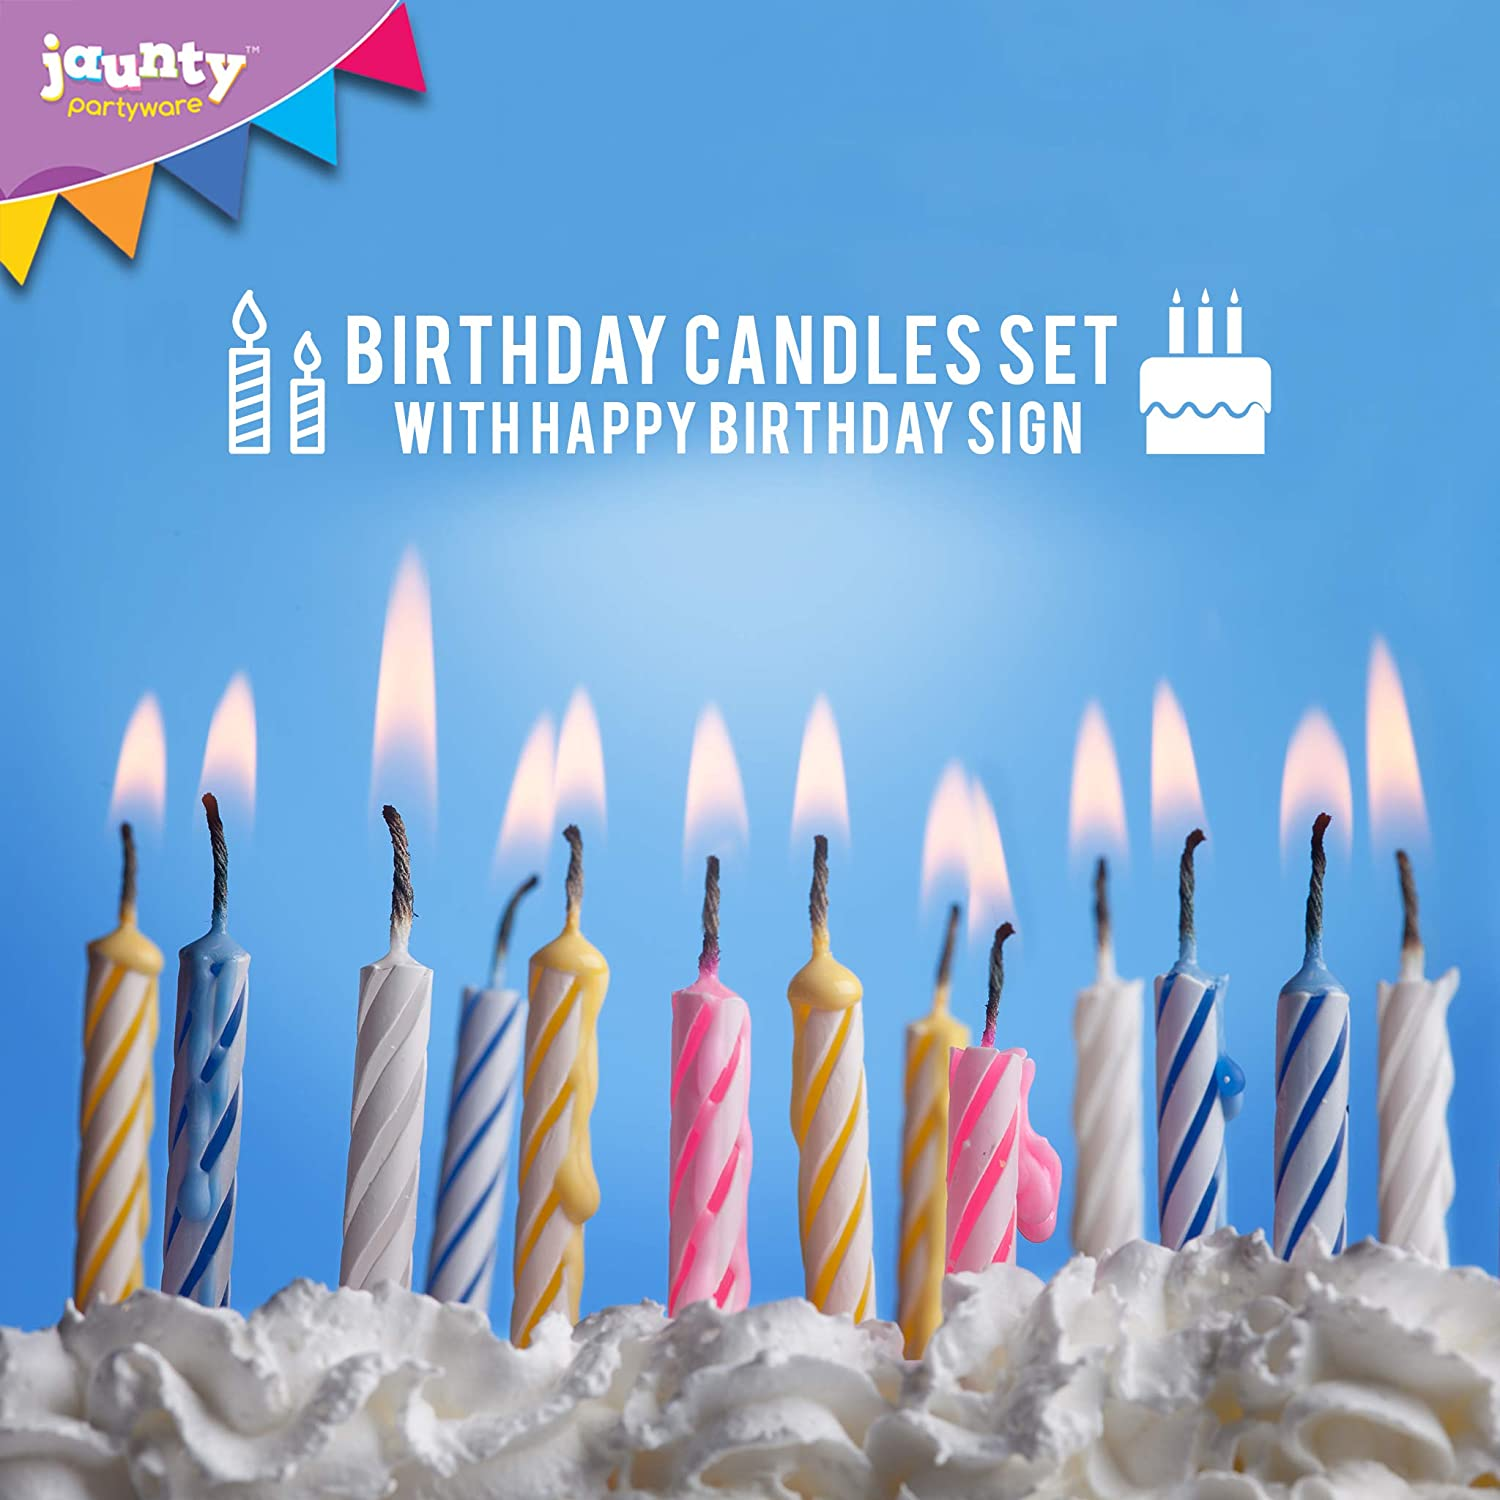 Includes 40 Birthday Candles Holders In Four Fun Colours Jaunty Partyware 40pk Happy Cake